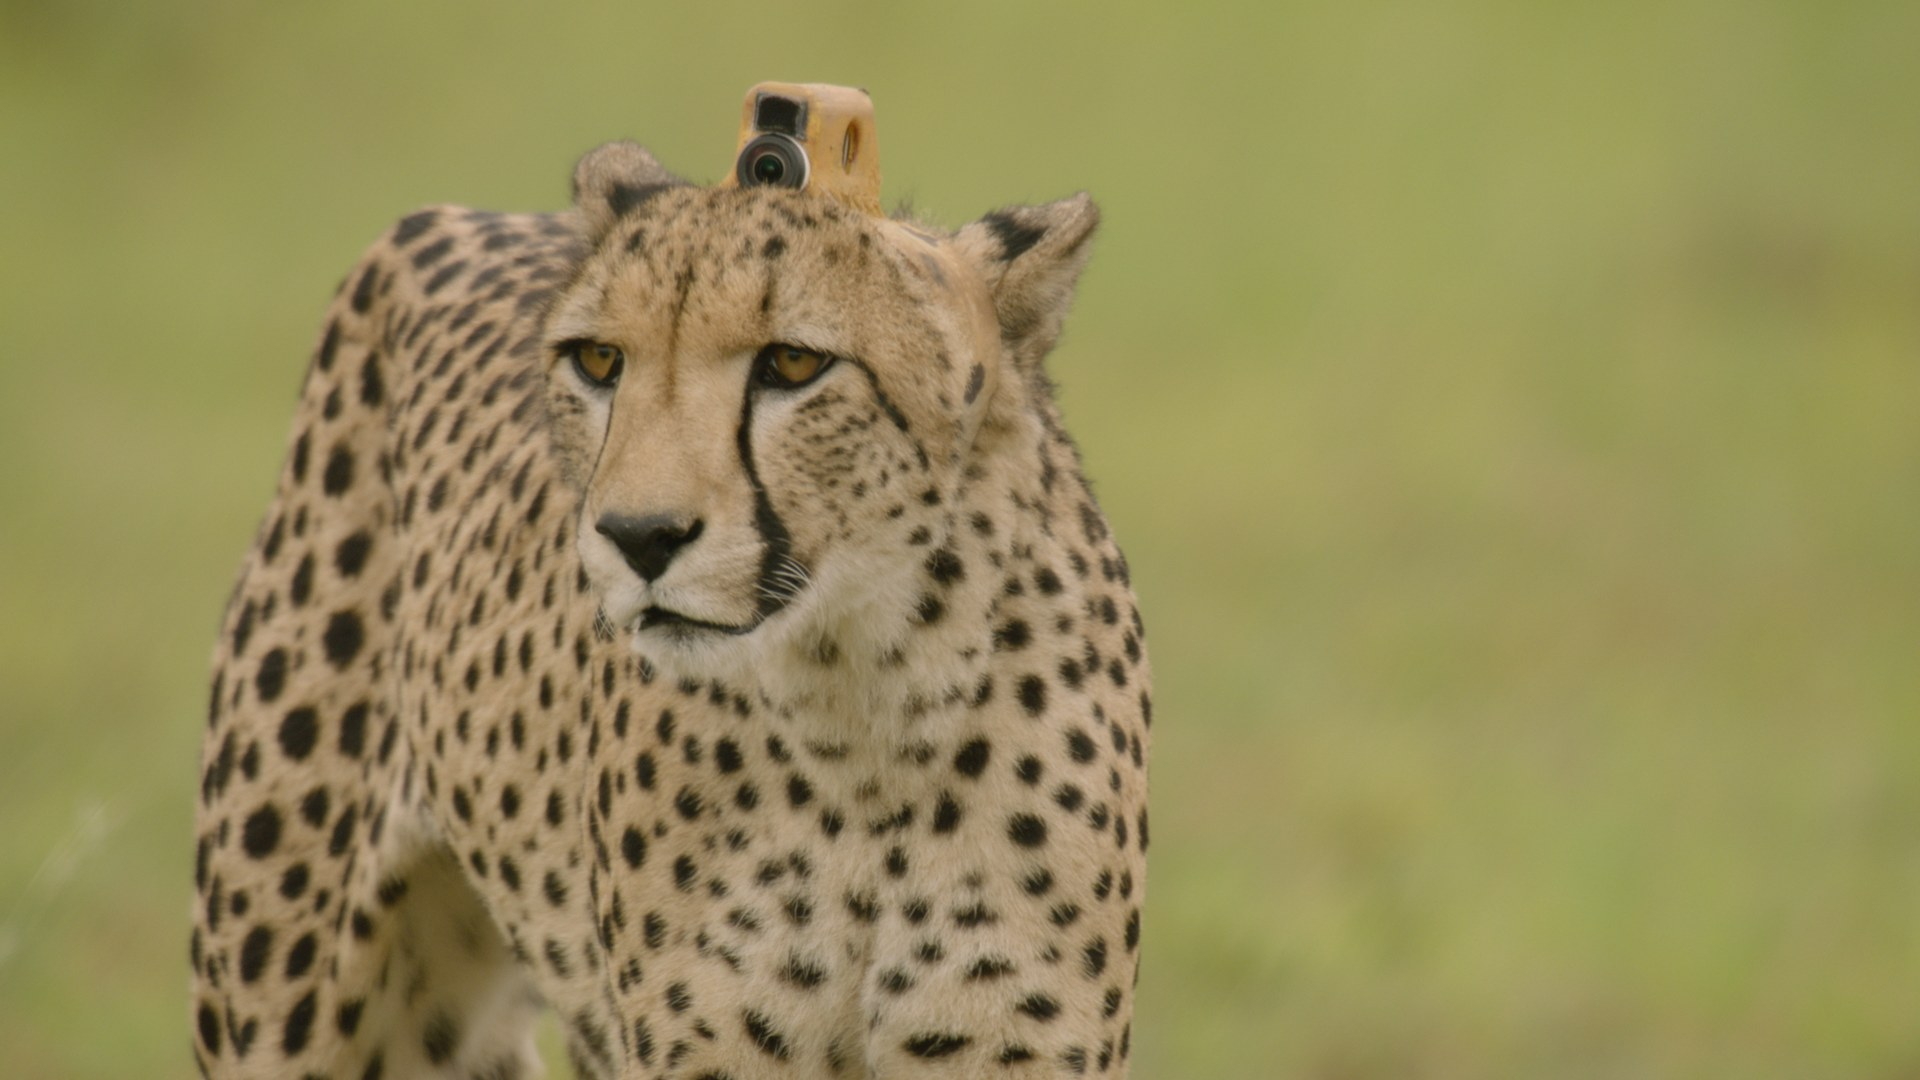 A cheetah fitted with a special camera